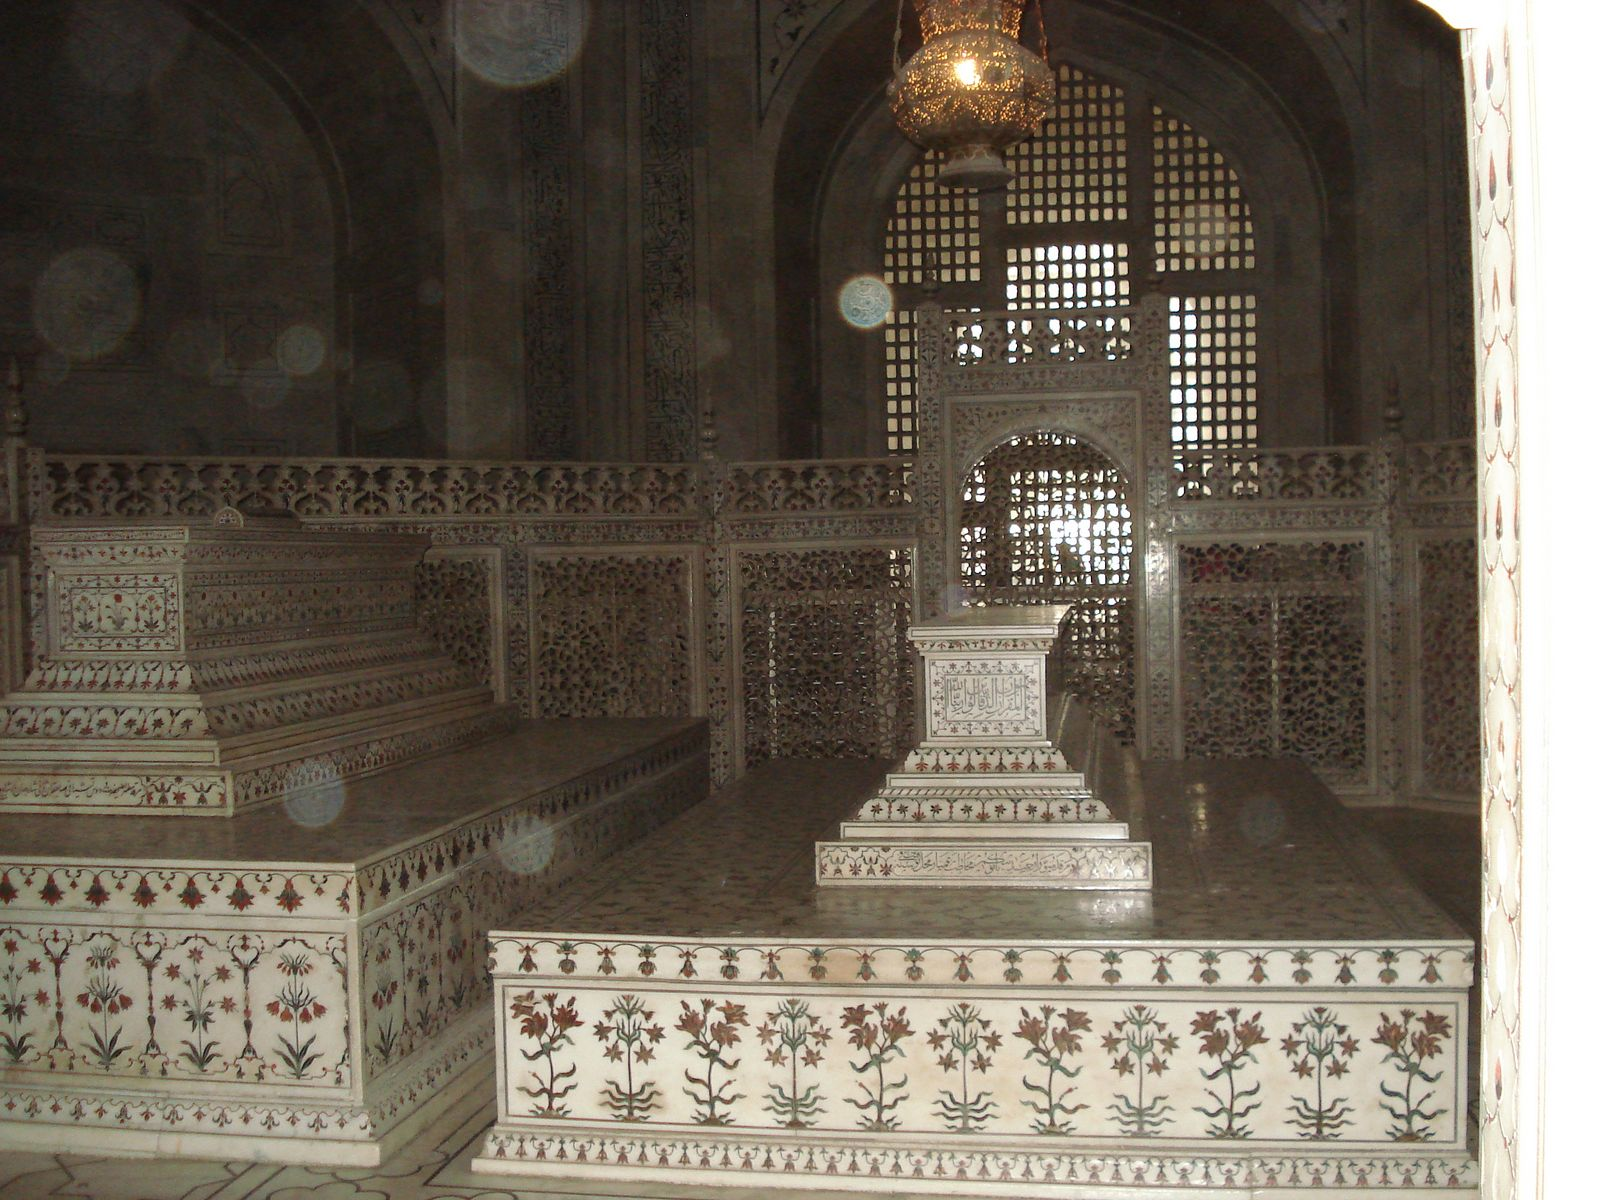 Taj Mahal, India, Interior architecture detail